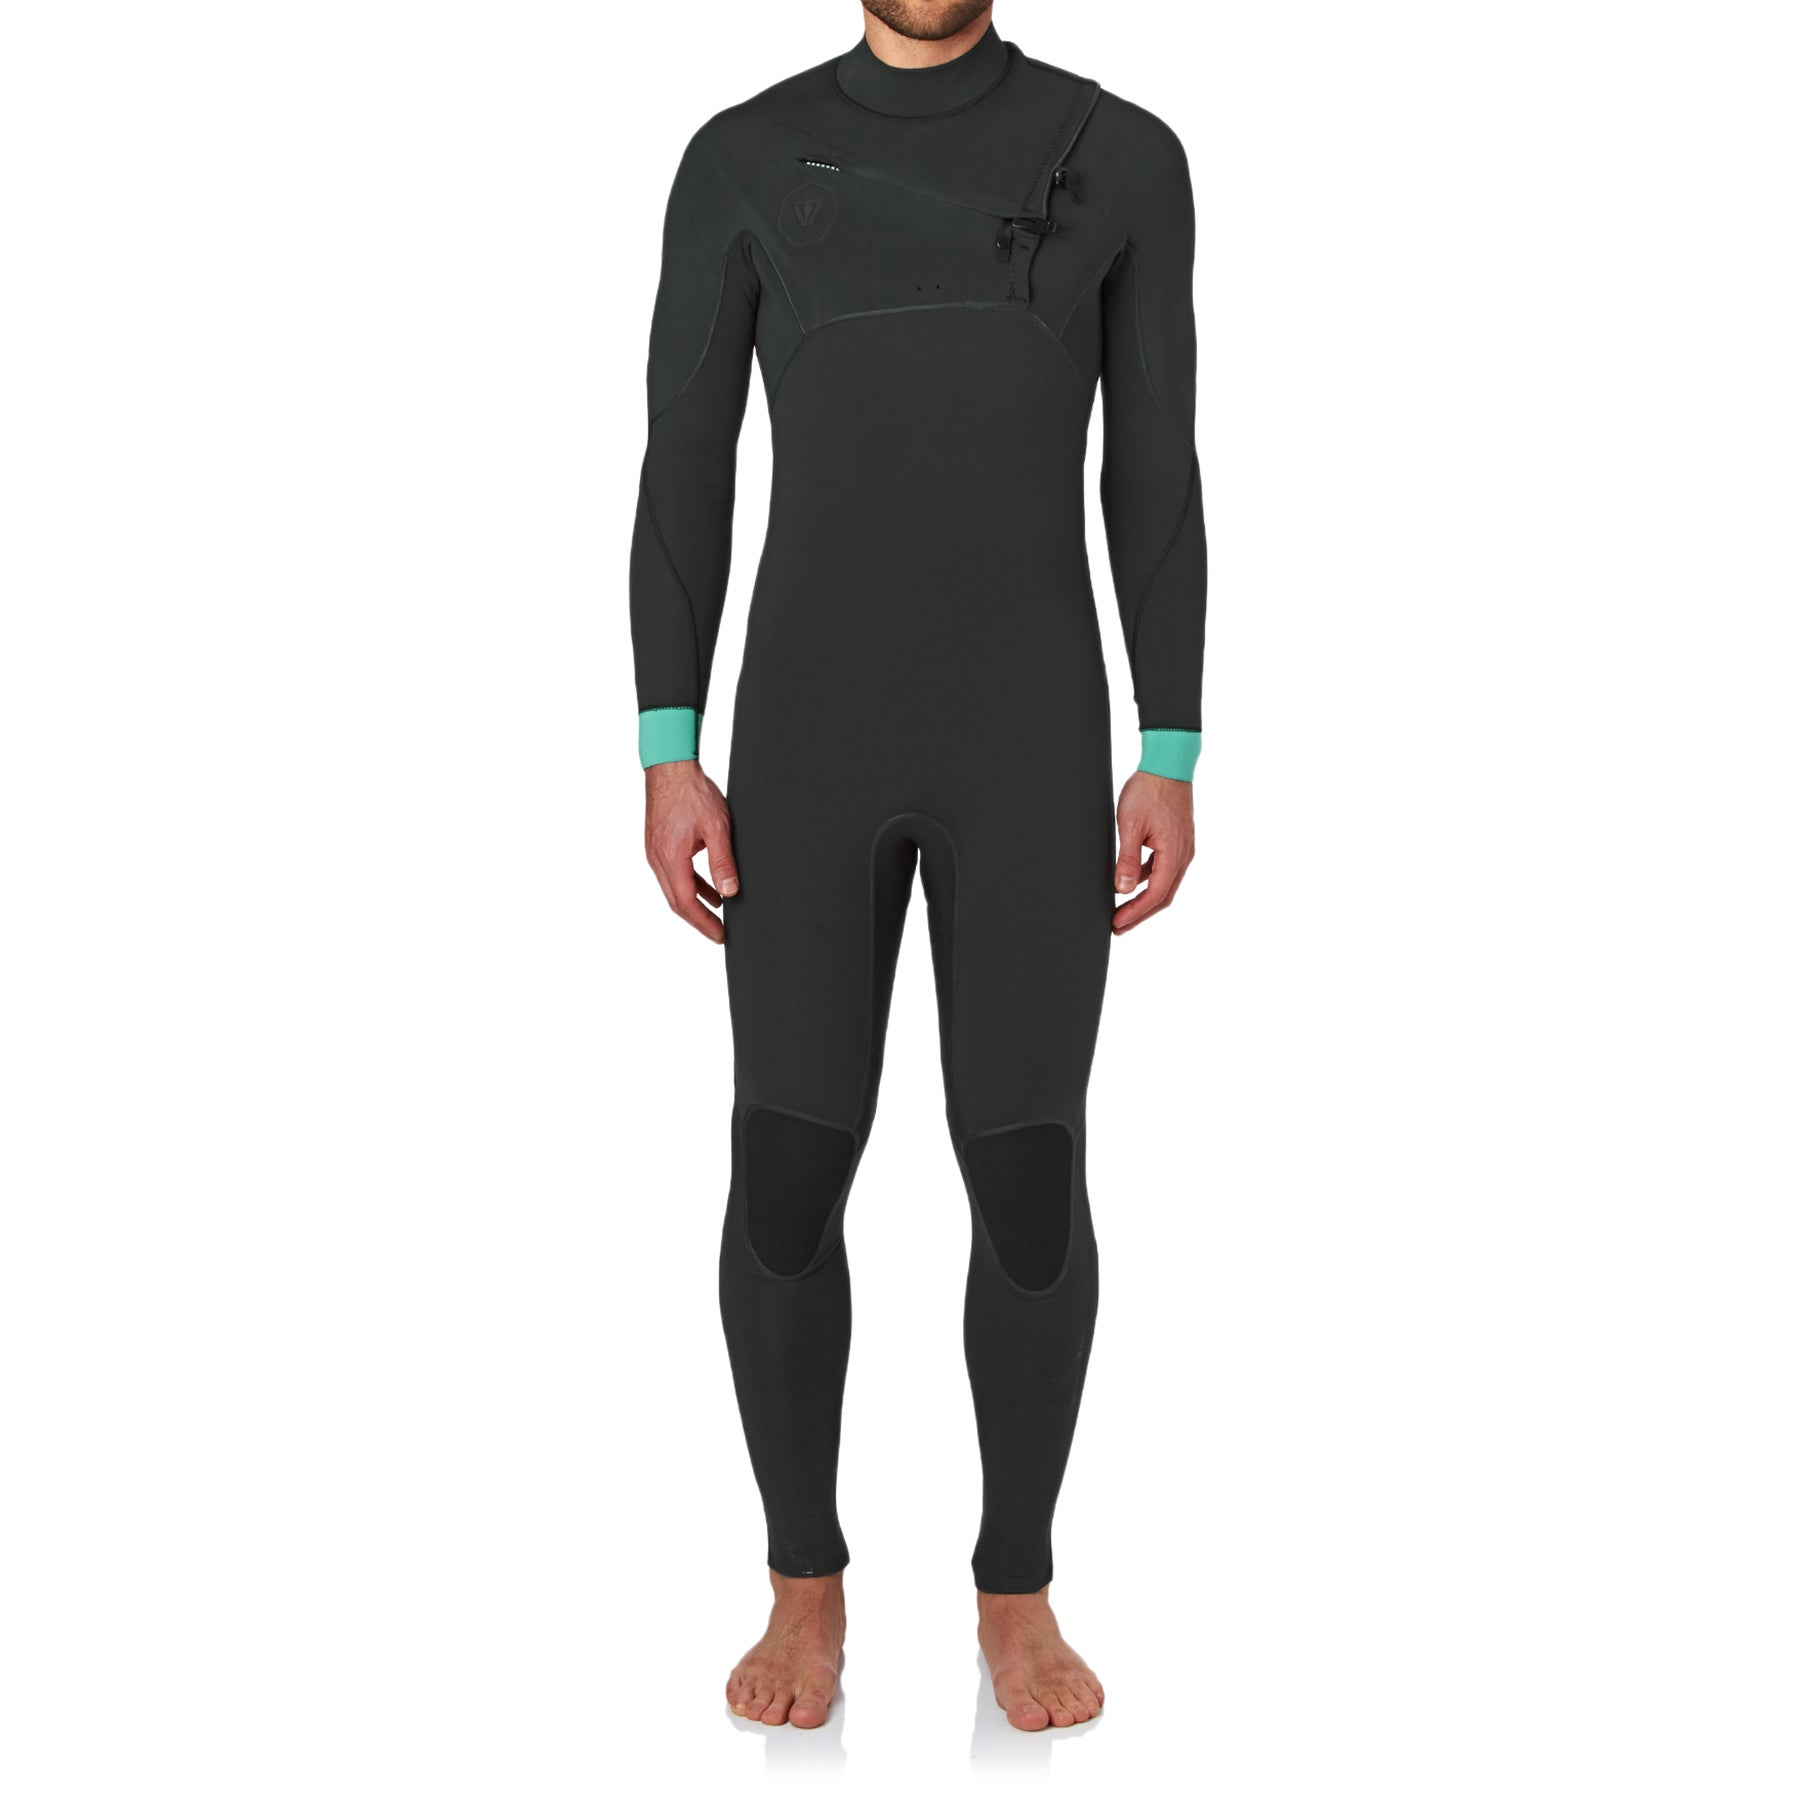 Vissla Eco Seas 3/2mm 2017 Chest Zip Wetsuit - Stealth